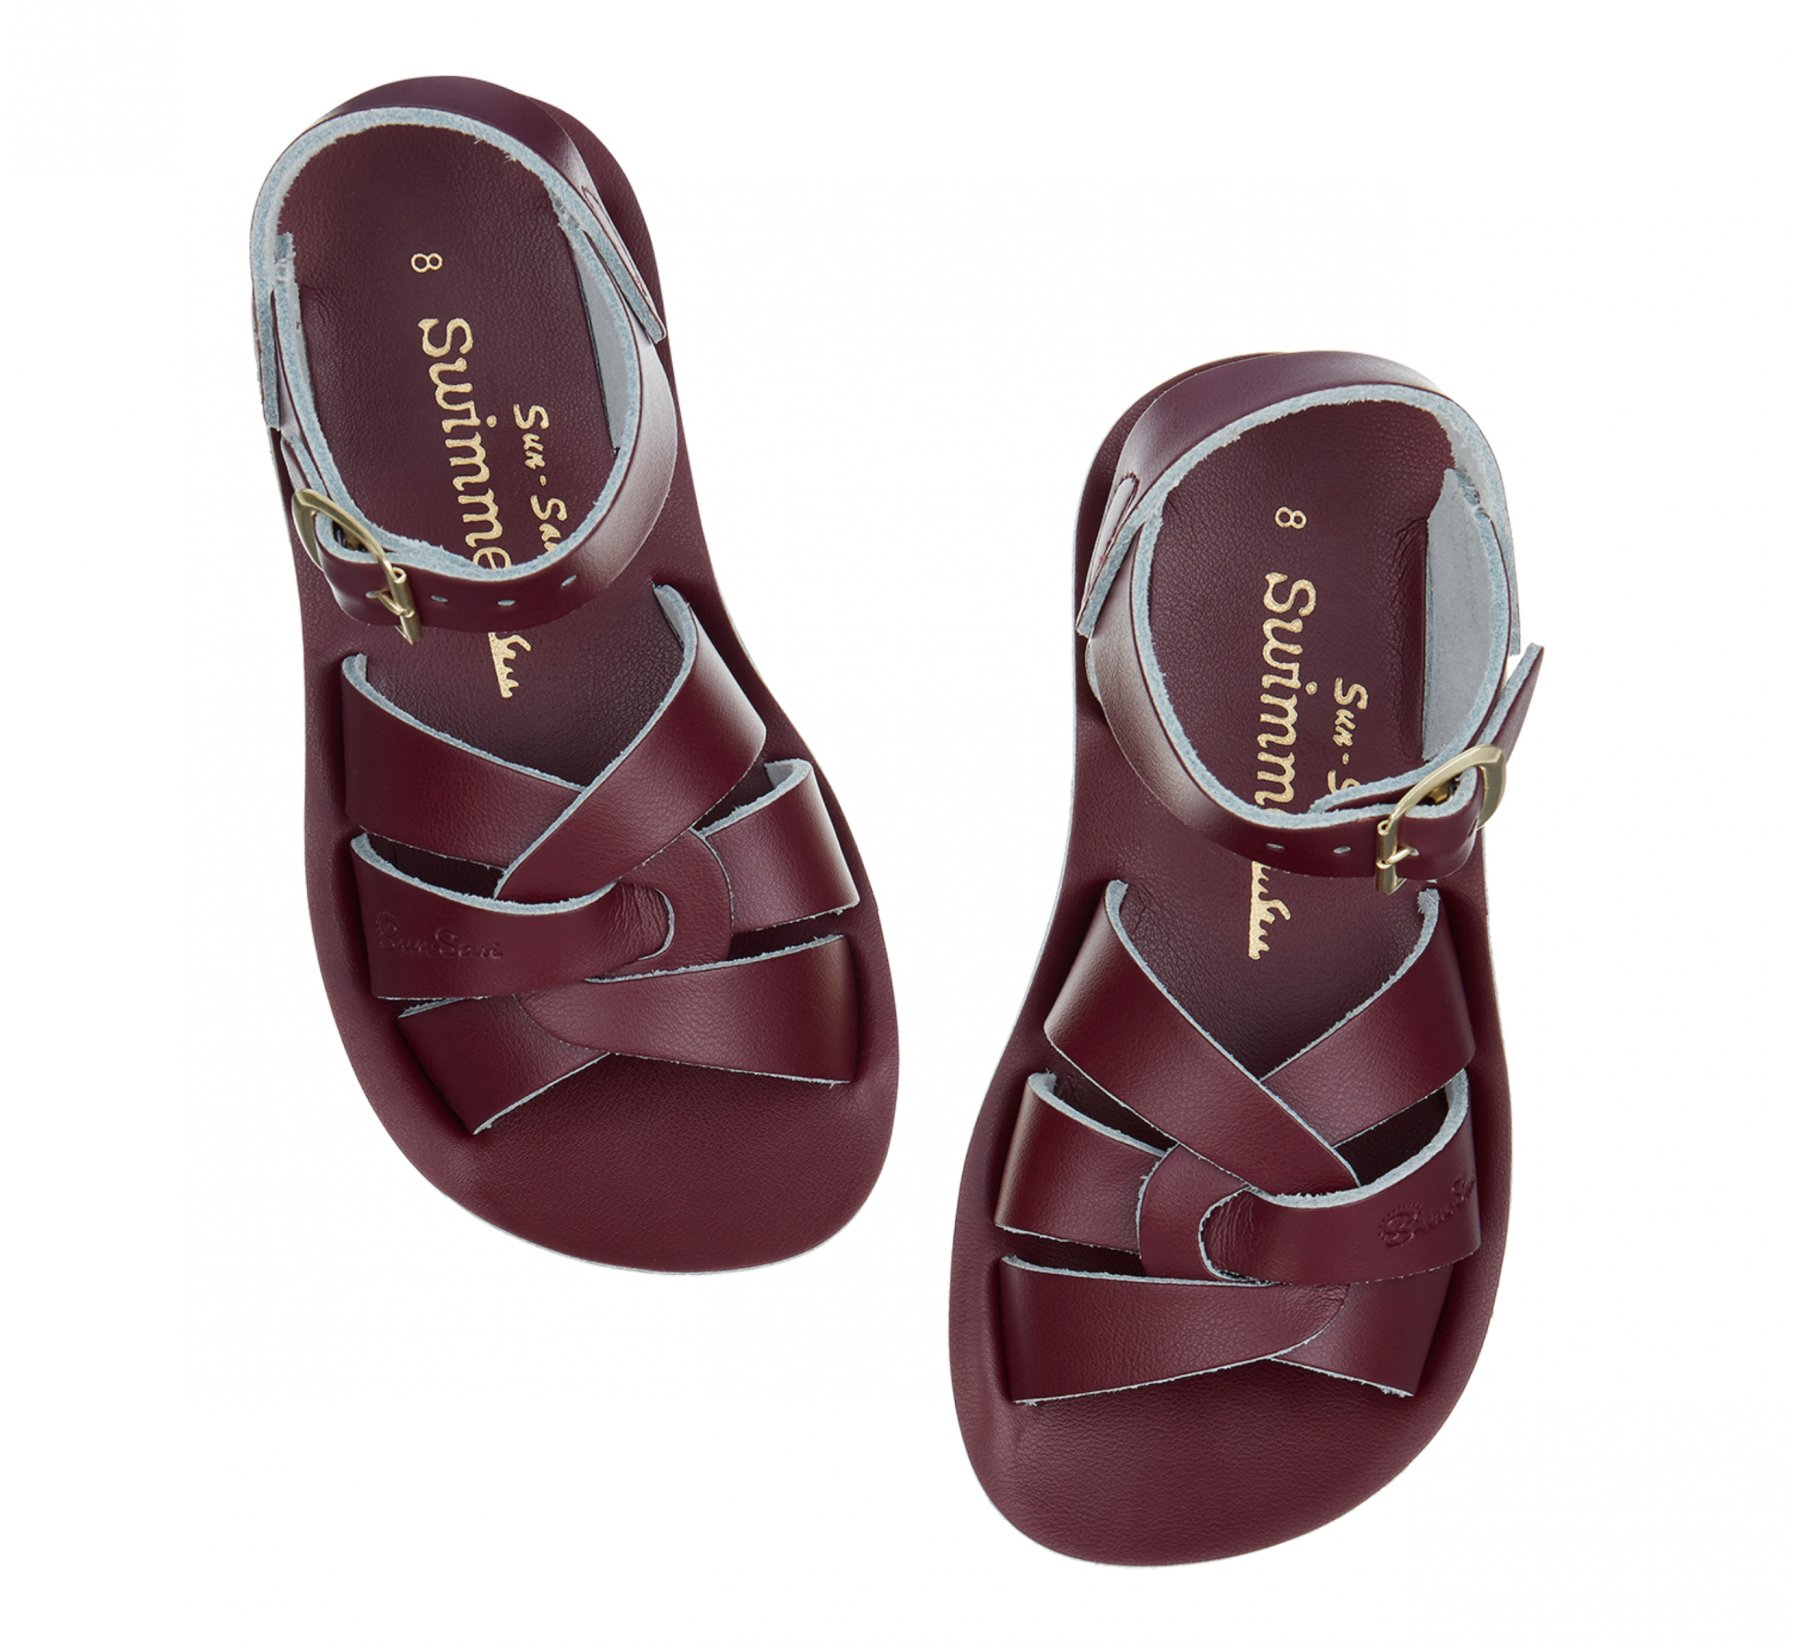 Swimmer Claret  - Salt Water Sandals